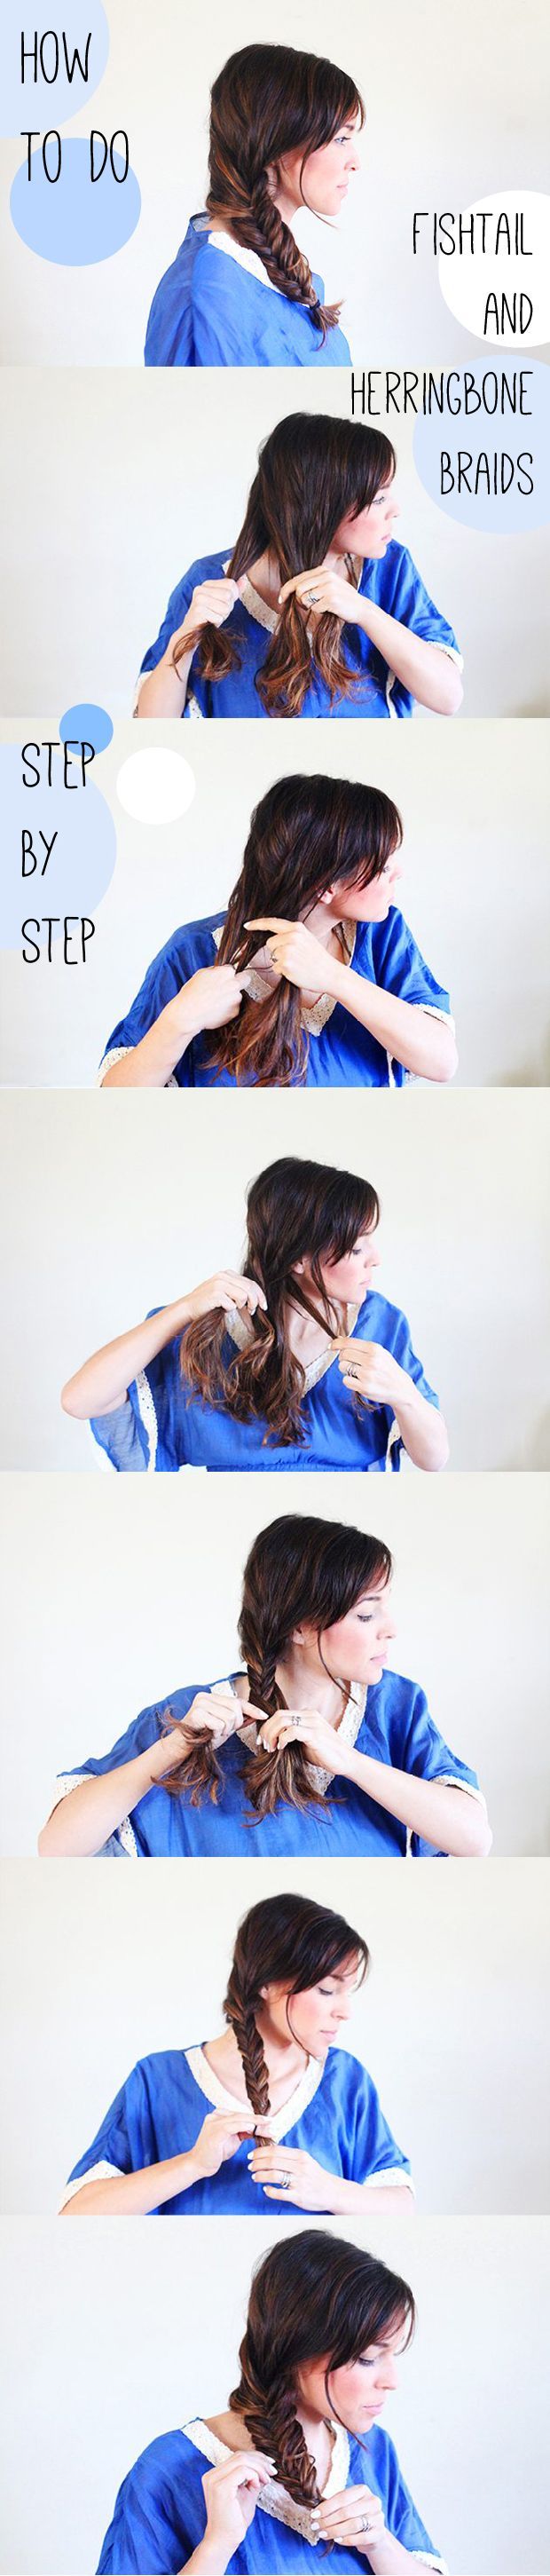 A simple way to master the beautiful and chic fishtail braid: http://www.ehow.com/how_11399860_fishtail-herringbone-braids-step-step.html?utm_source=pinterest.com&utm_medium=referral&utm_content=inline&utm_campaign=fanpage